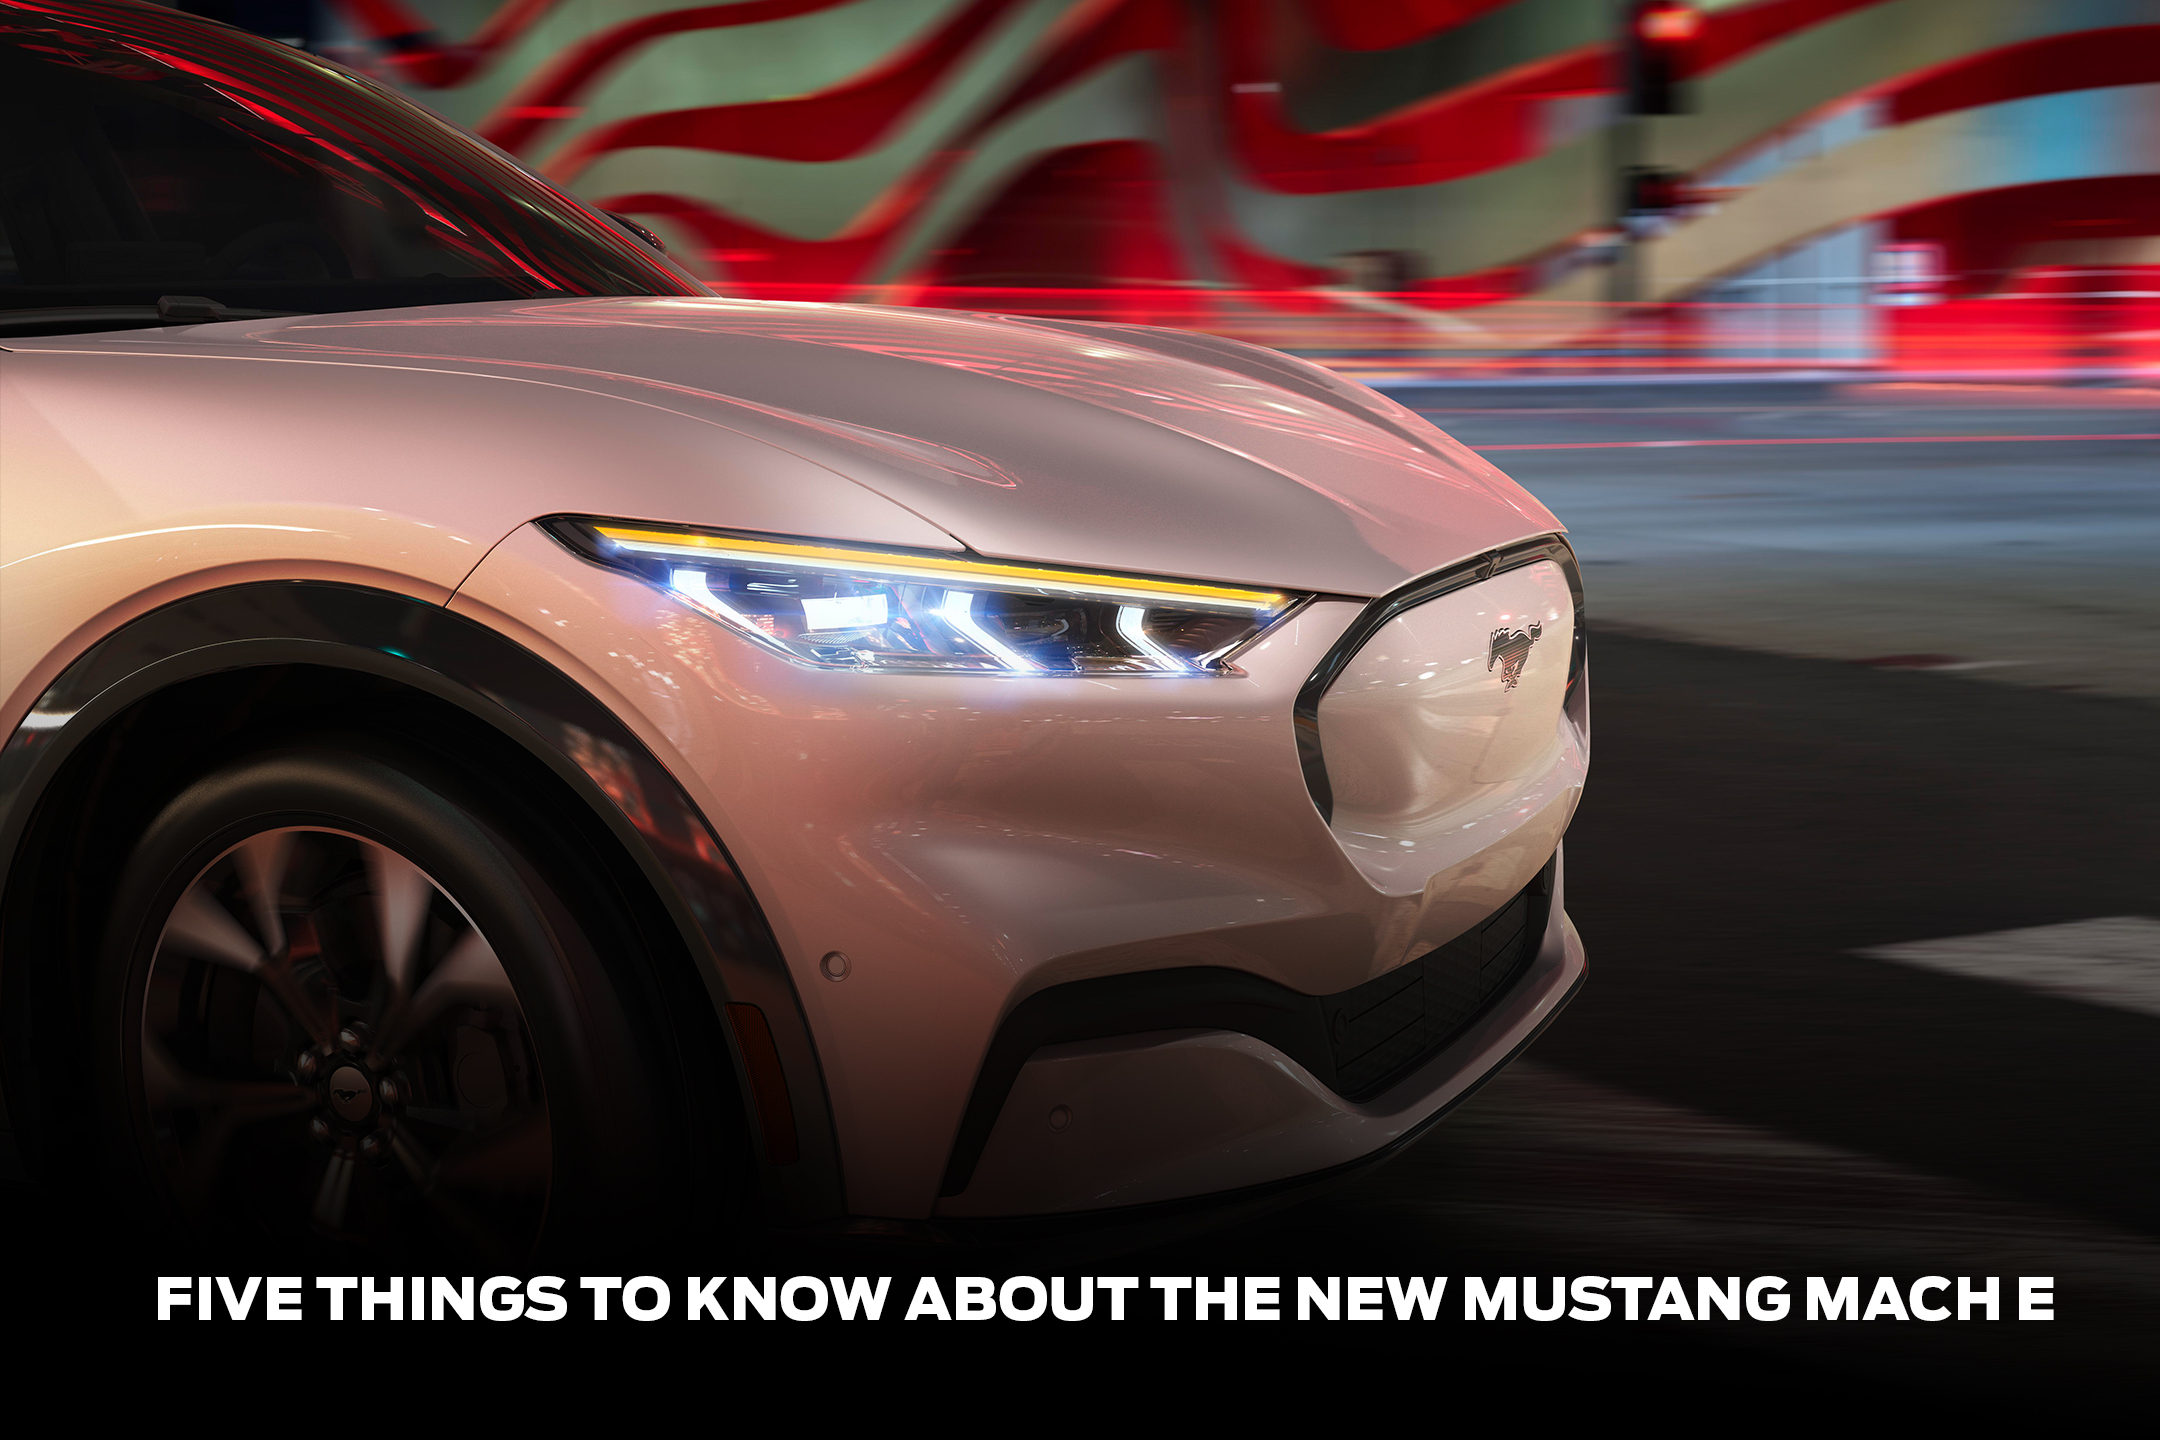 FIVE THINGS TO KNOW ABOUT THE NEW MUSTANG MACH-E